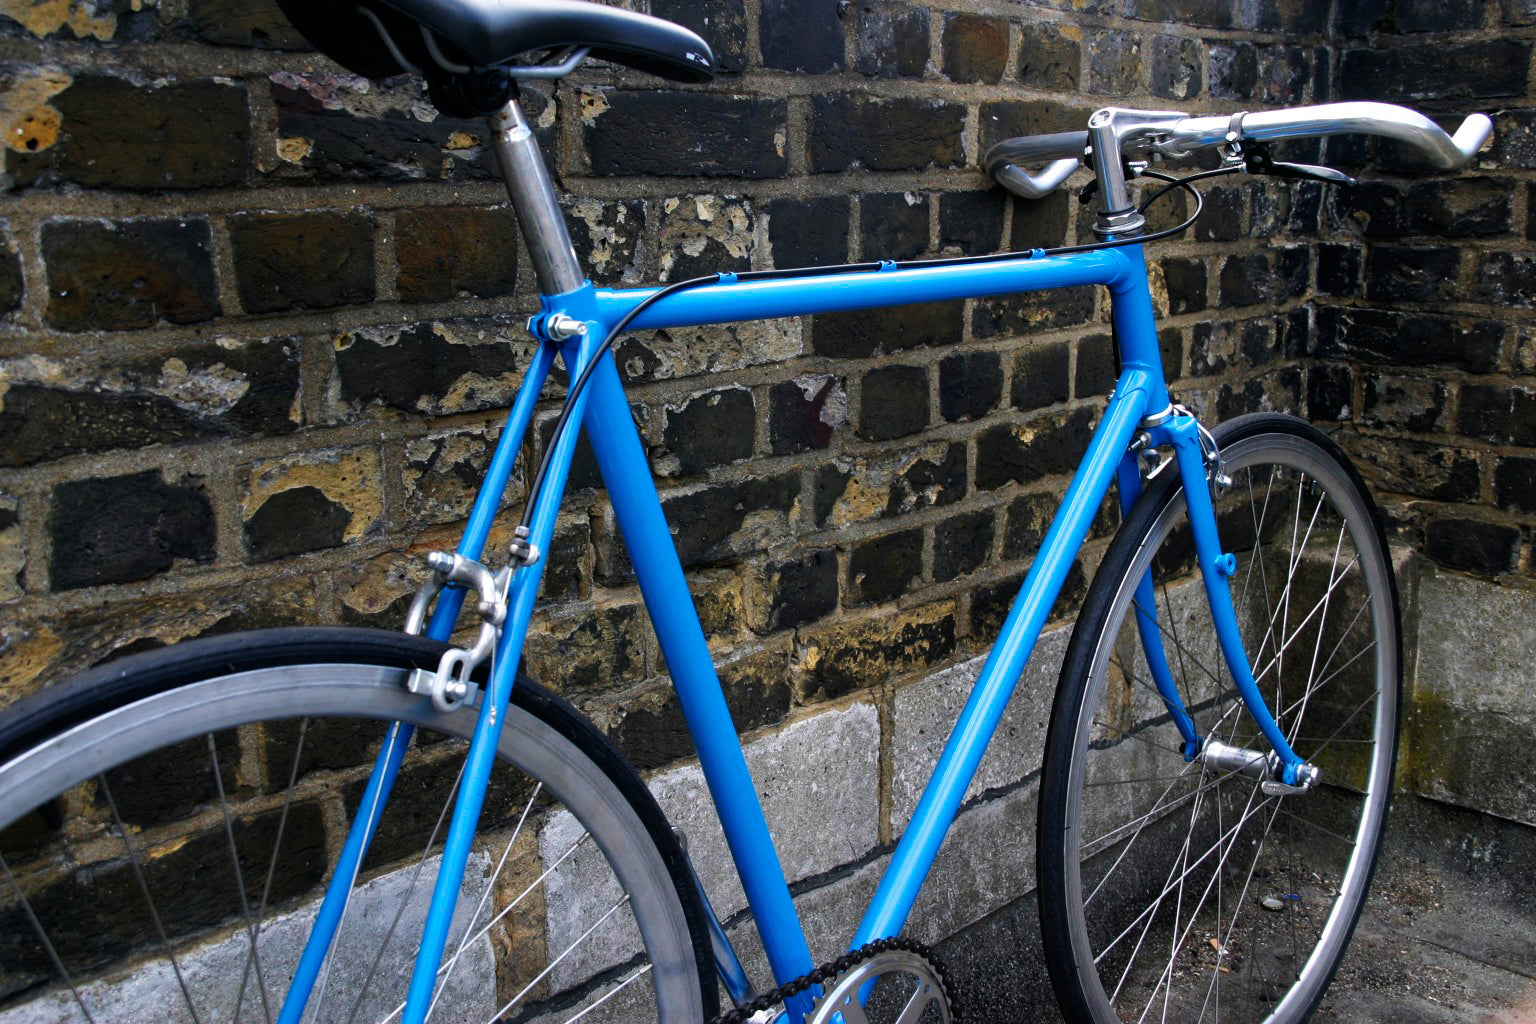 Raleigh bikes the complete buying guide - Cycling Weekly